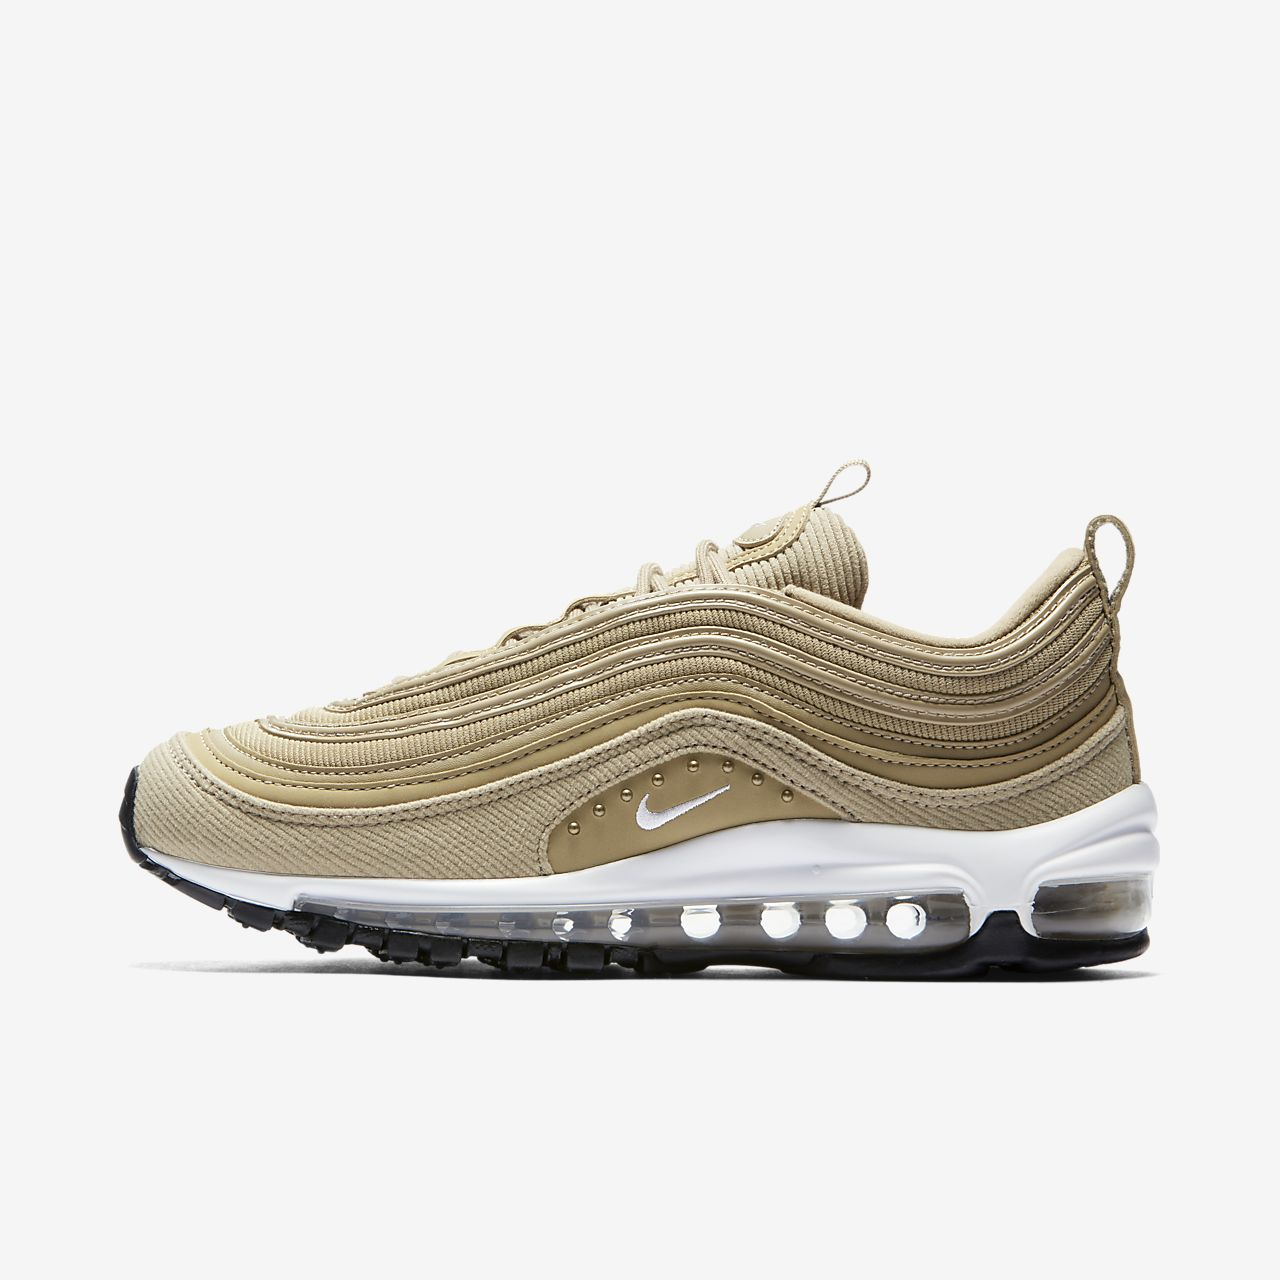 Nike Air Max 97 SE Women's Shoe